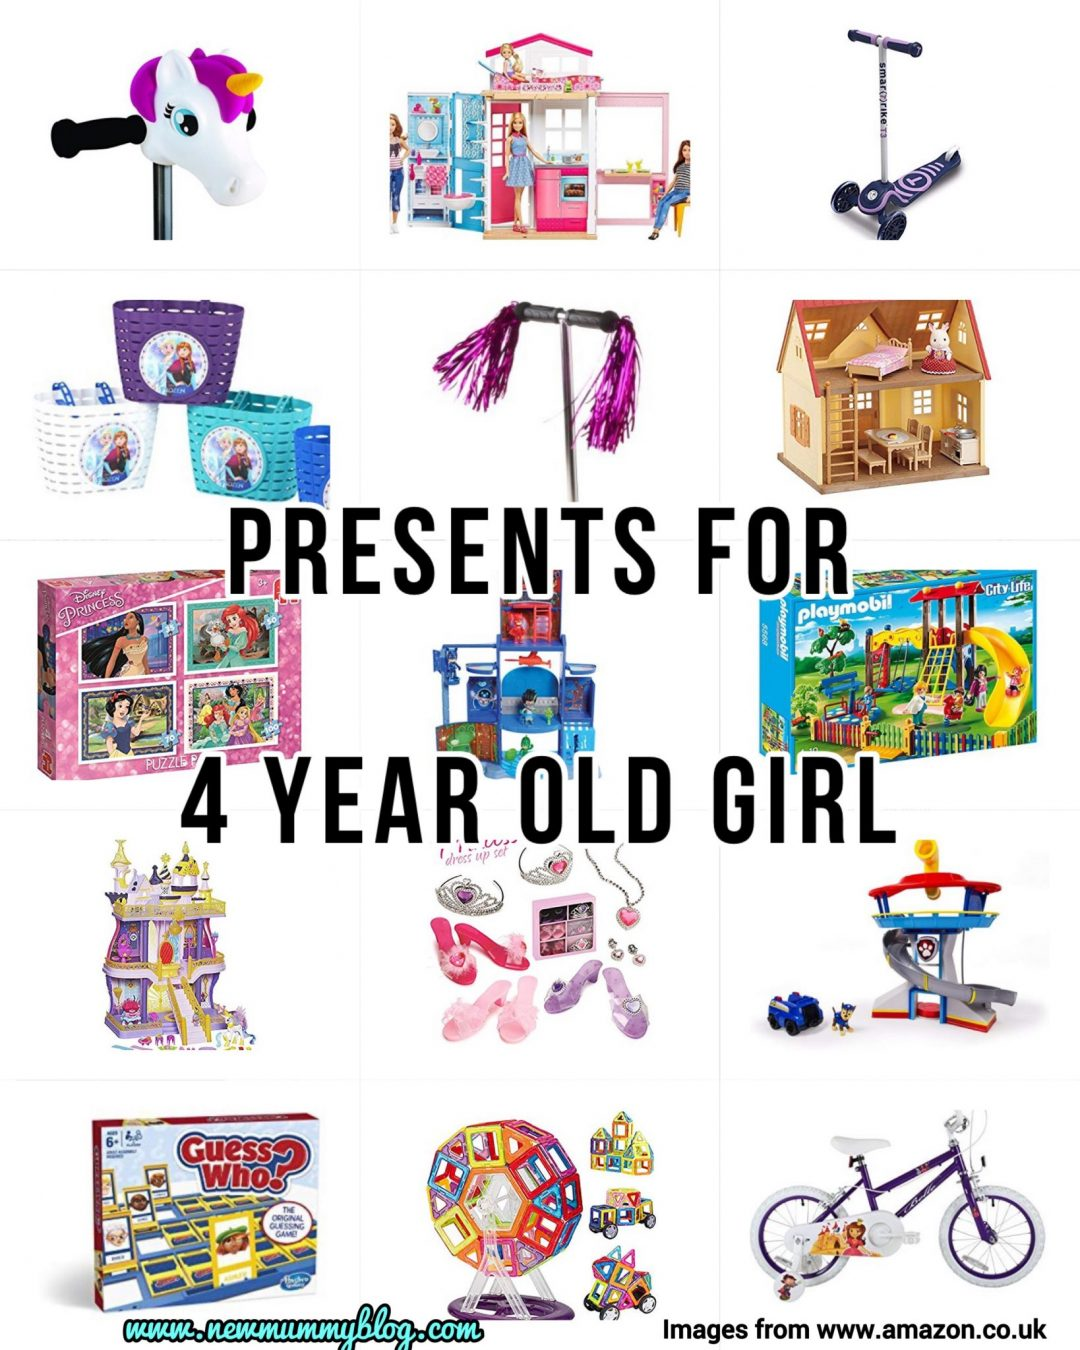 Presents for 4 year old girl gifts gift guide present ideas preschool last minute amazon